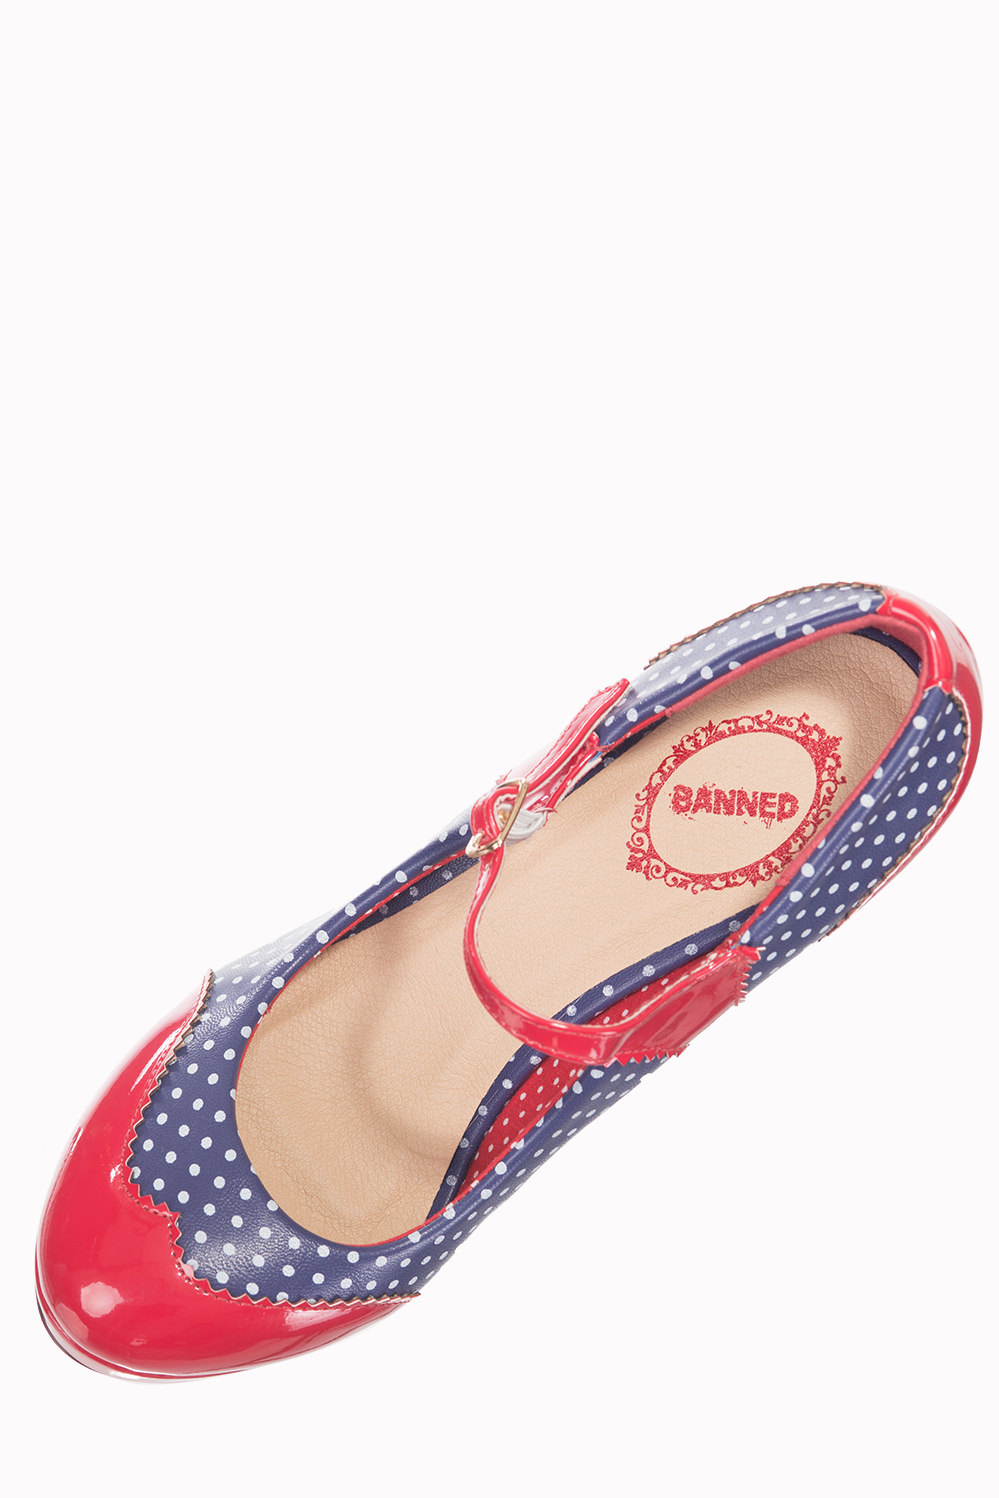 Dancing Days Mary Jane Navy Red 50s Polka Dot Shoes